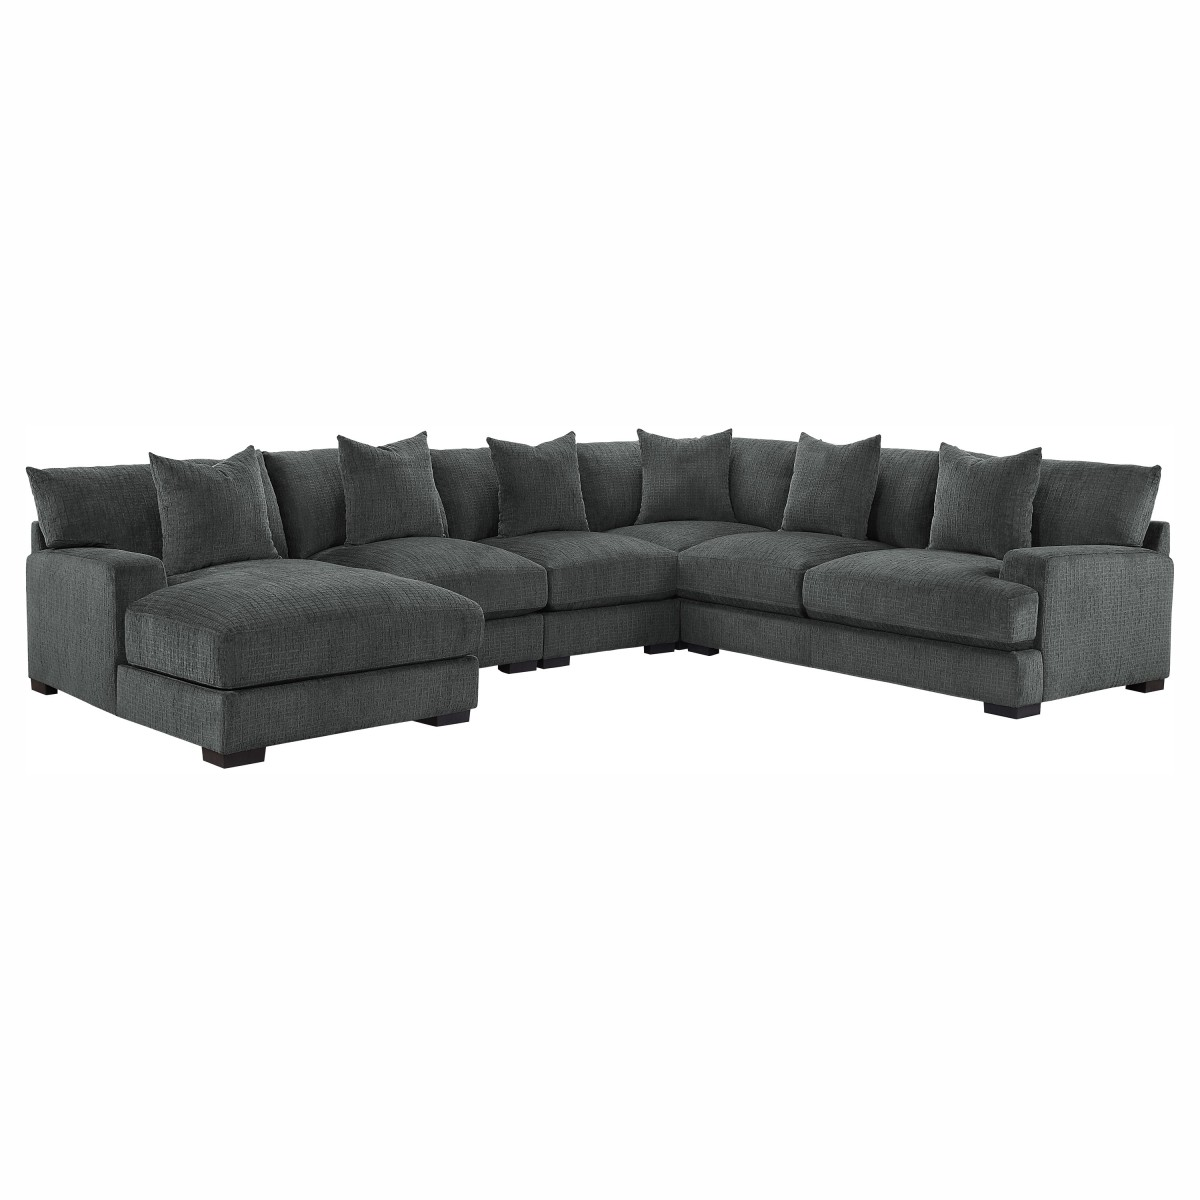 9857DG*5LC2R 5-Piece Modular Sectional with Left Chaise